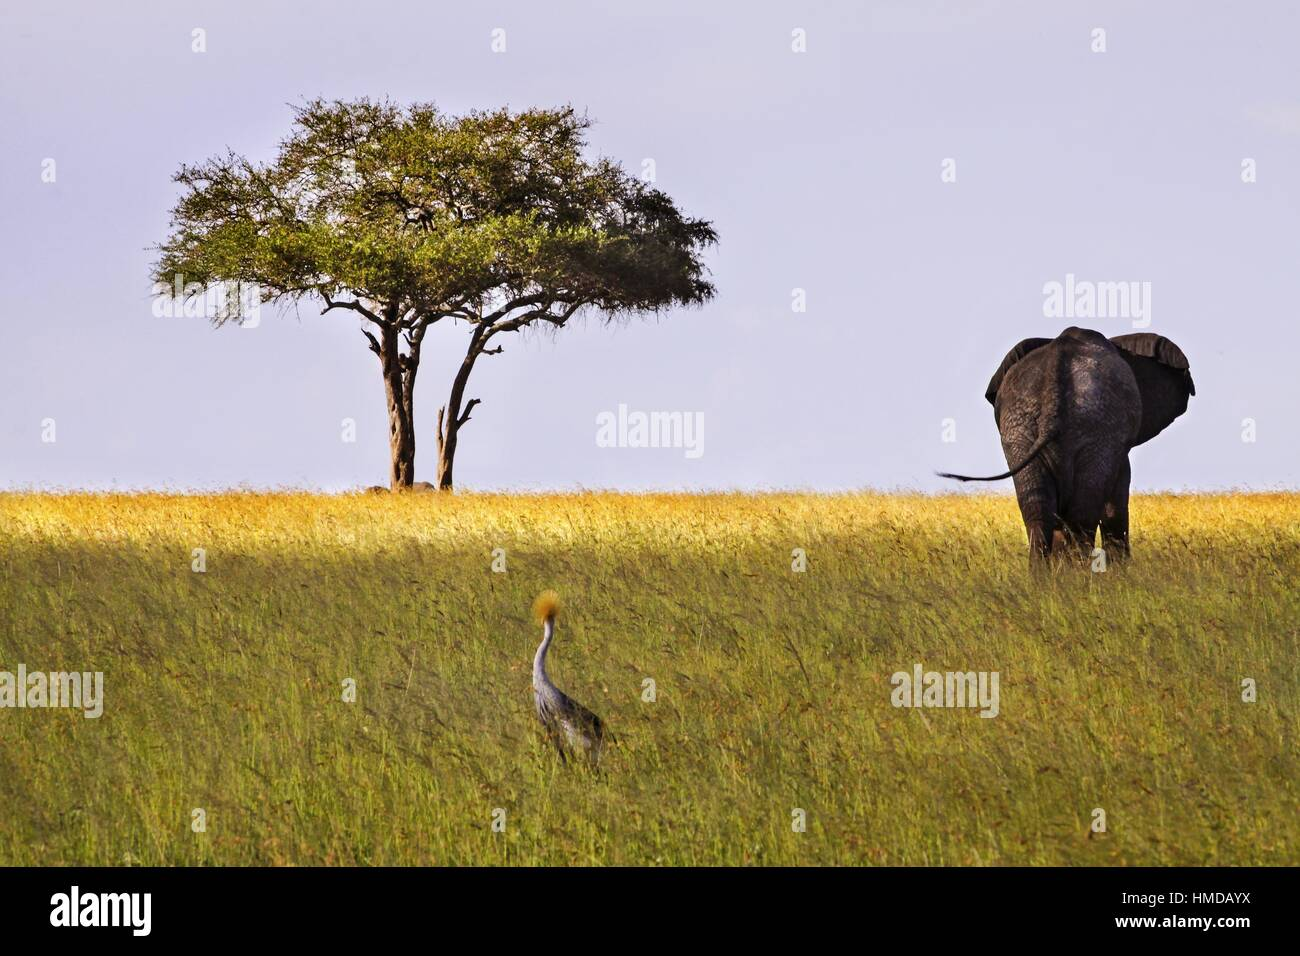 Serengeti National Park Tanzania Landscape with Distant Isolated Acacia Tree and Elephant on the Horizon - Stock Image